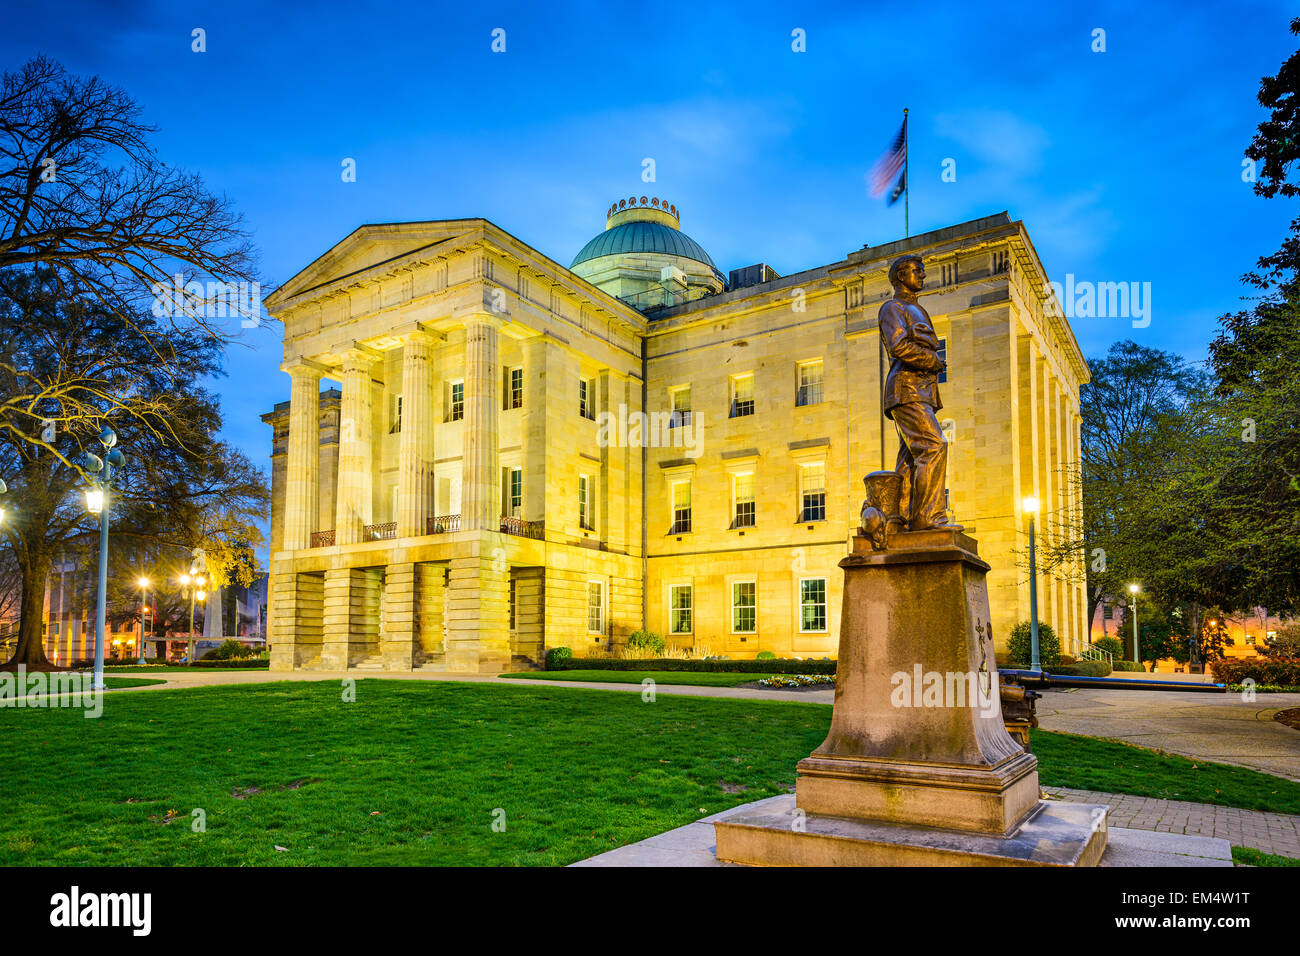 Raleigh, North Carolina, USA State Capitol Building. - Stock Image